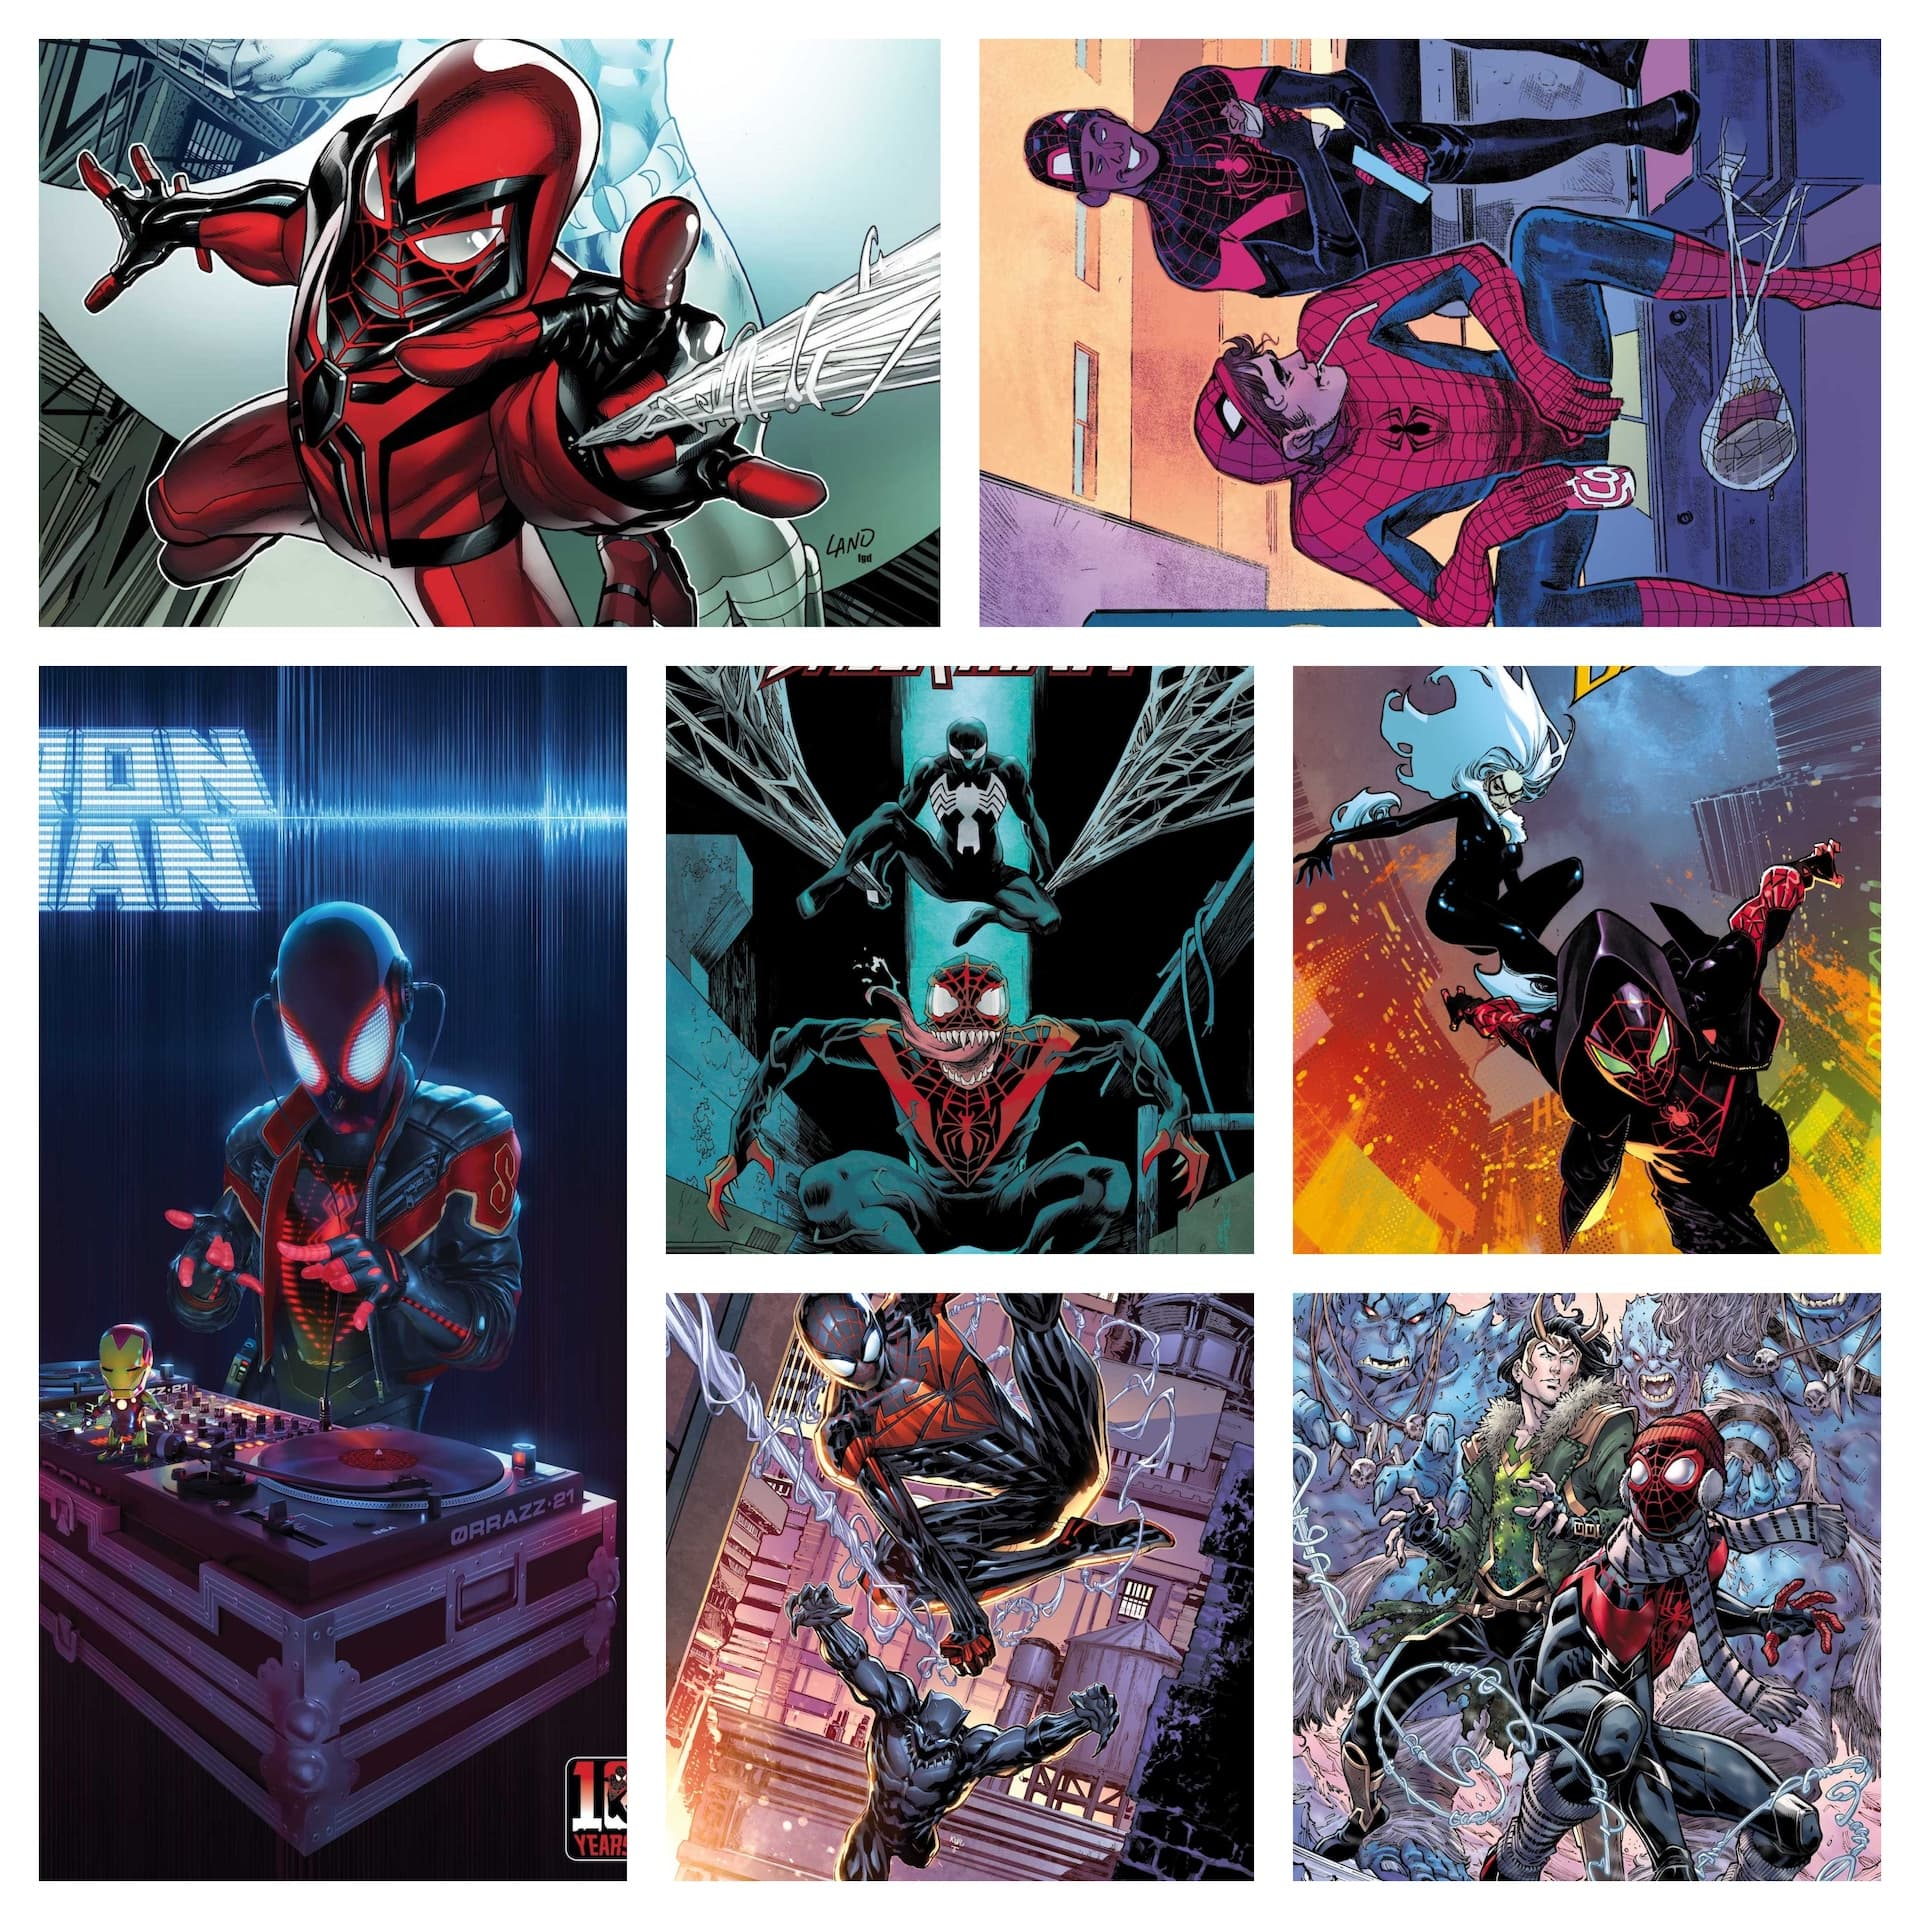 Marvel celebrates Miles Morales 10 year anniversary with variant cover series